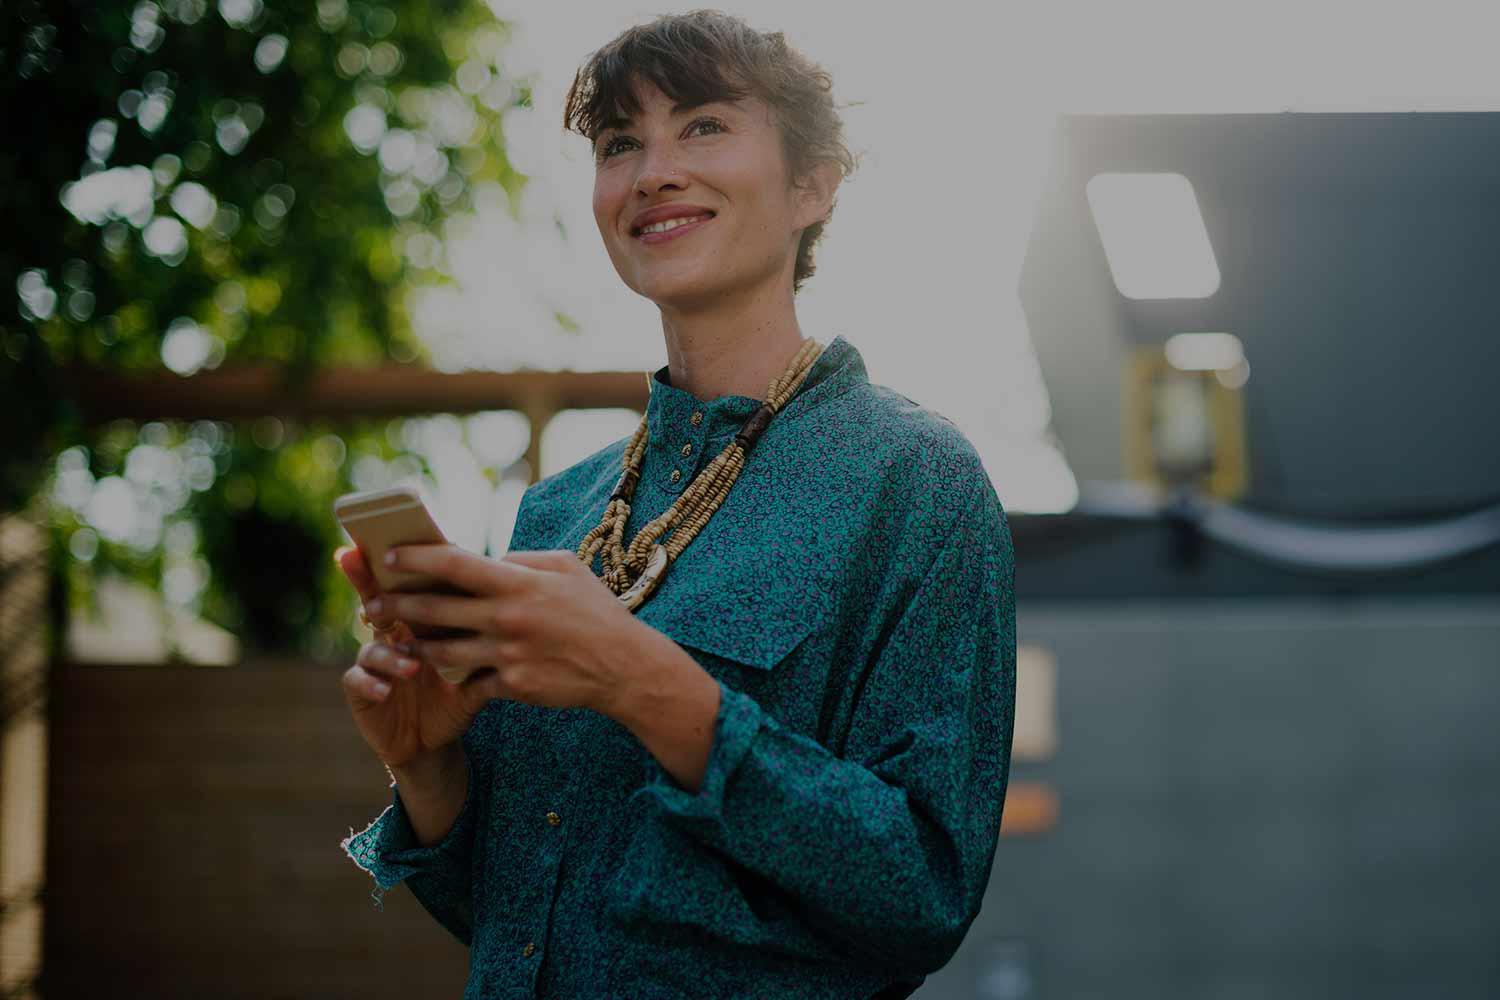 woman-smiling-with-phone-in-hand.jpg